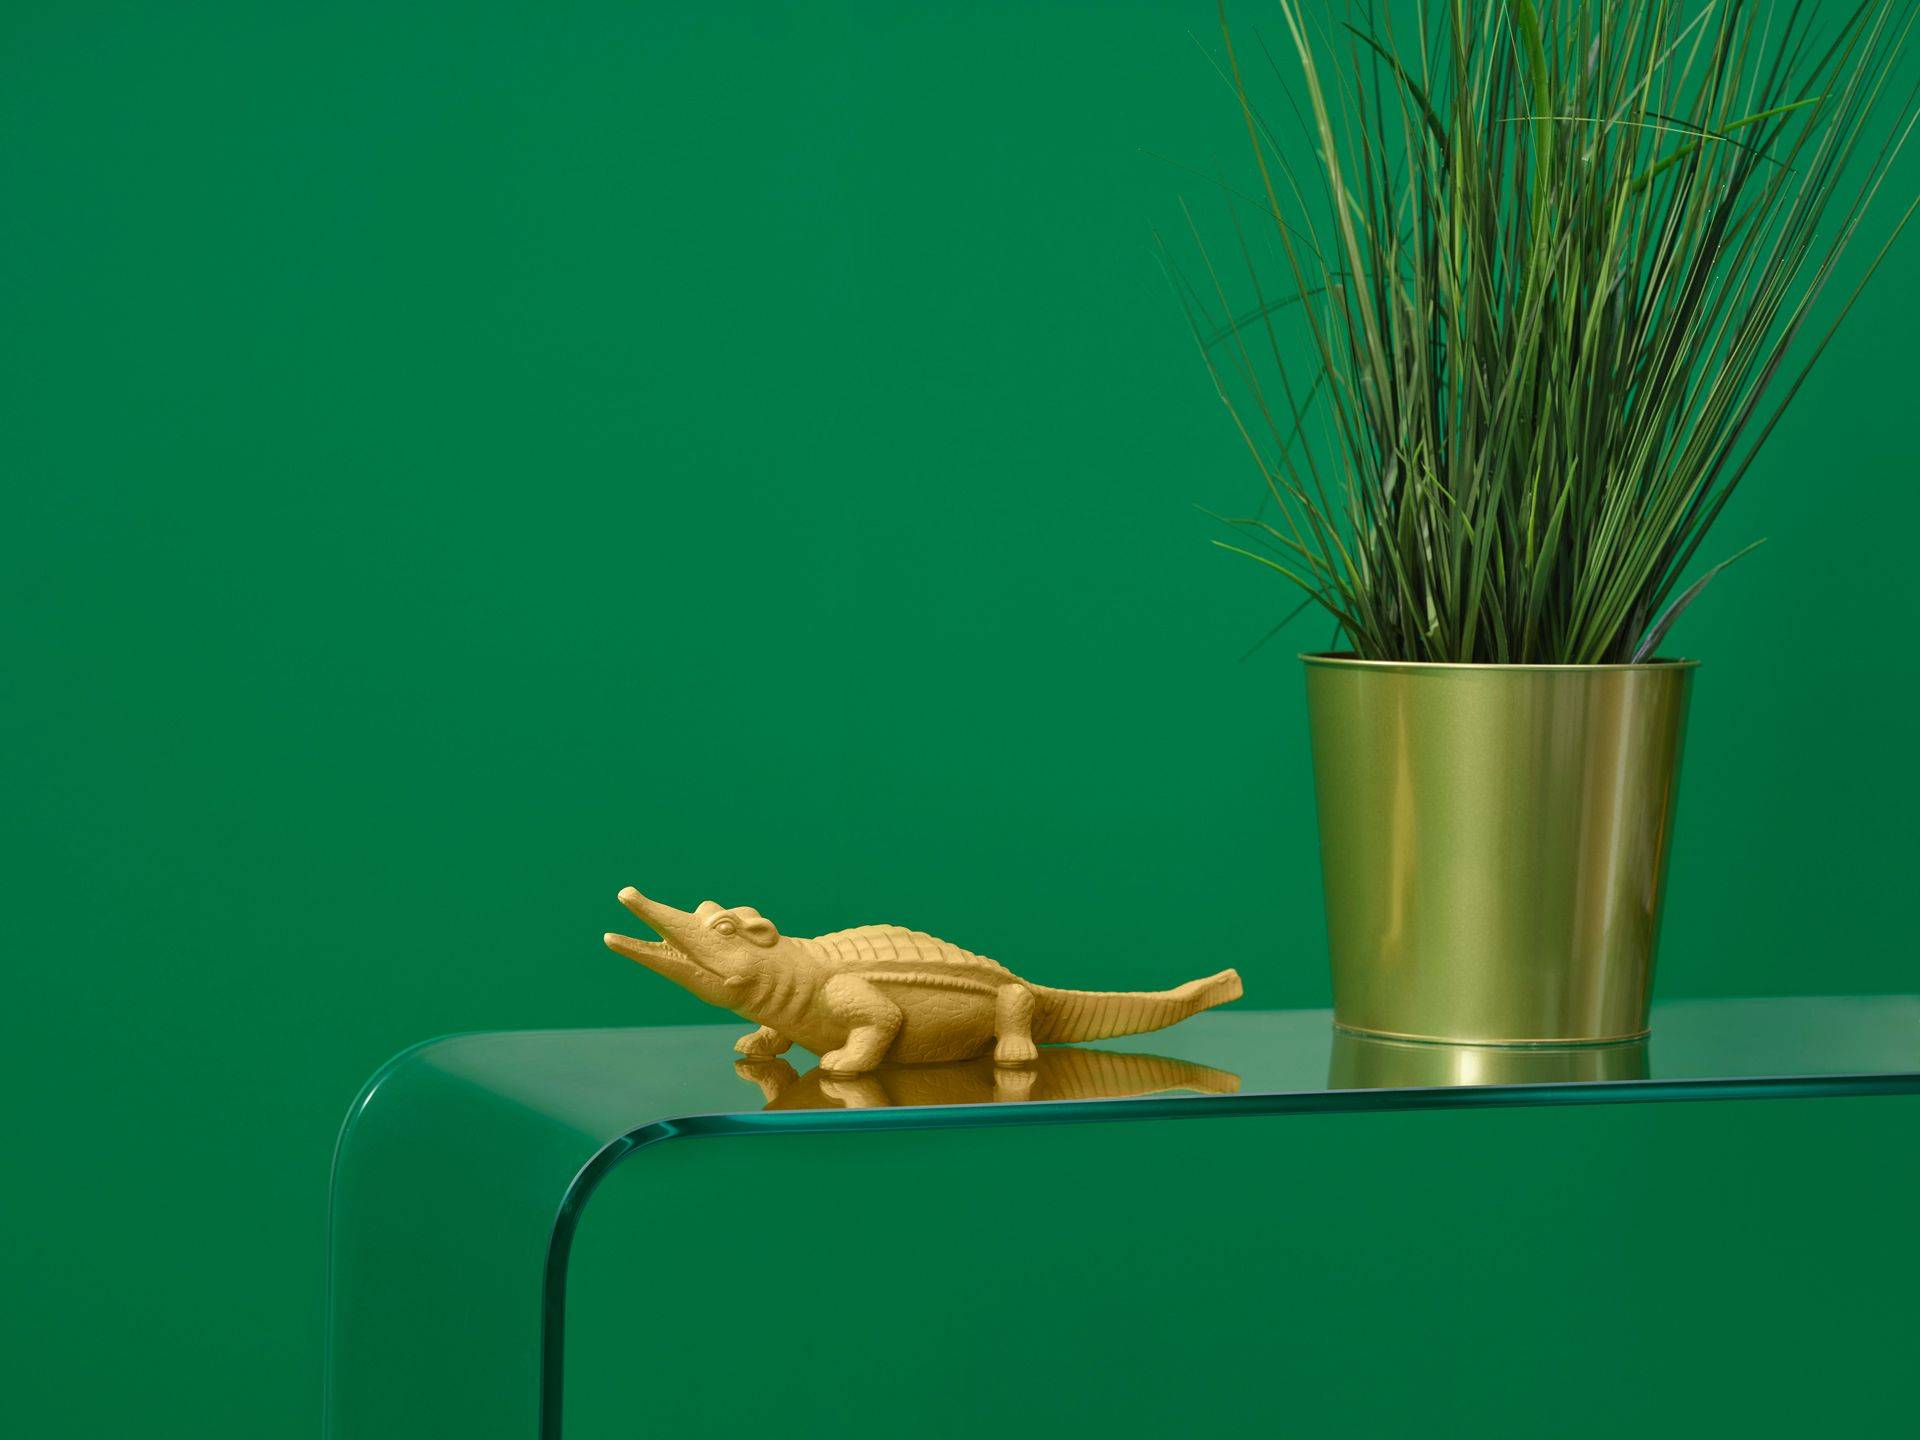 Close up of a plastic alligator on a transparent table with a gold pot of plants with a green wall.